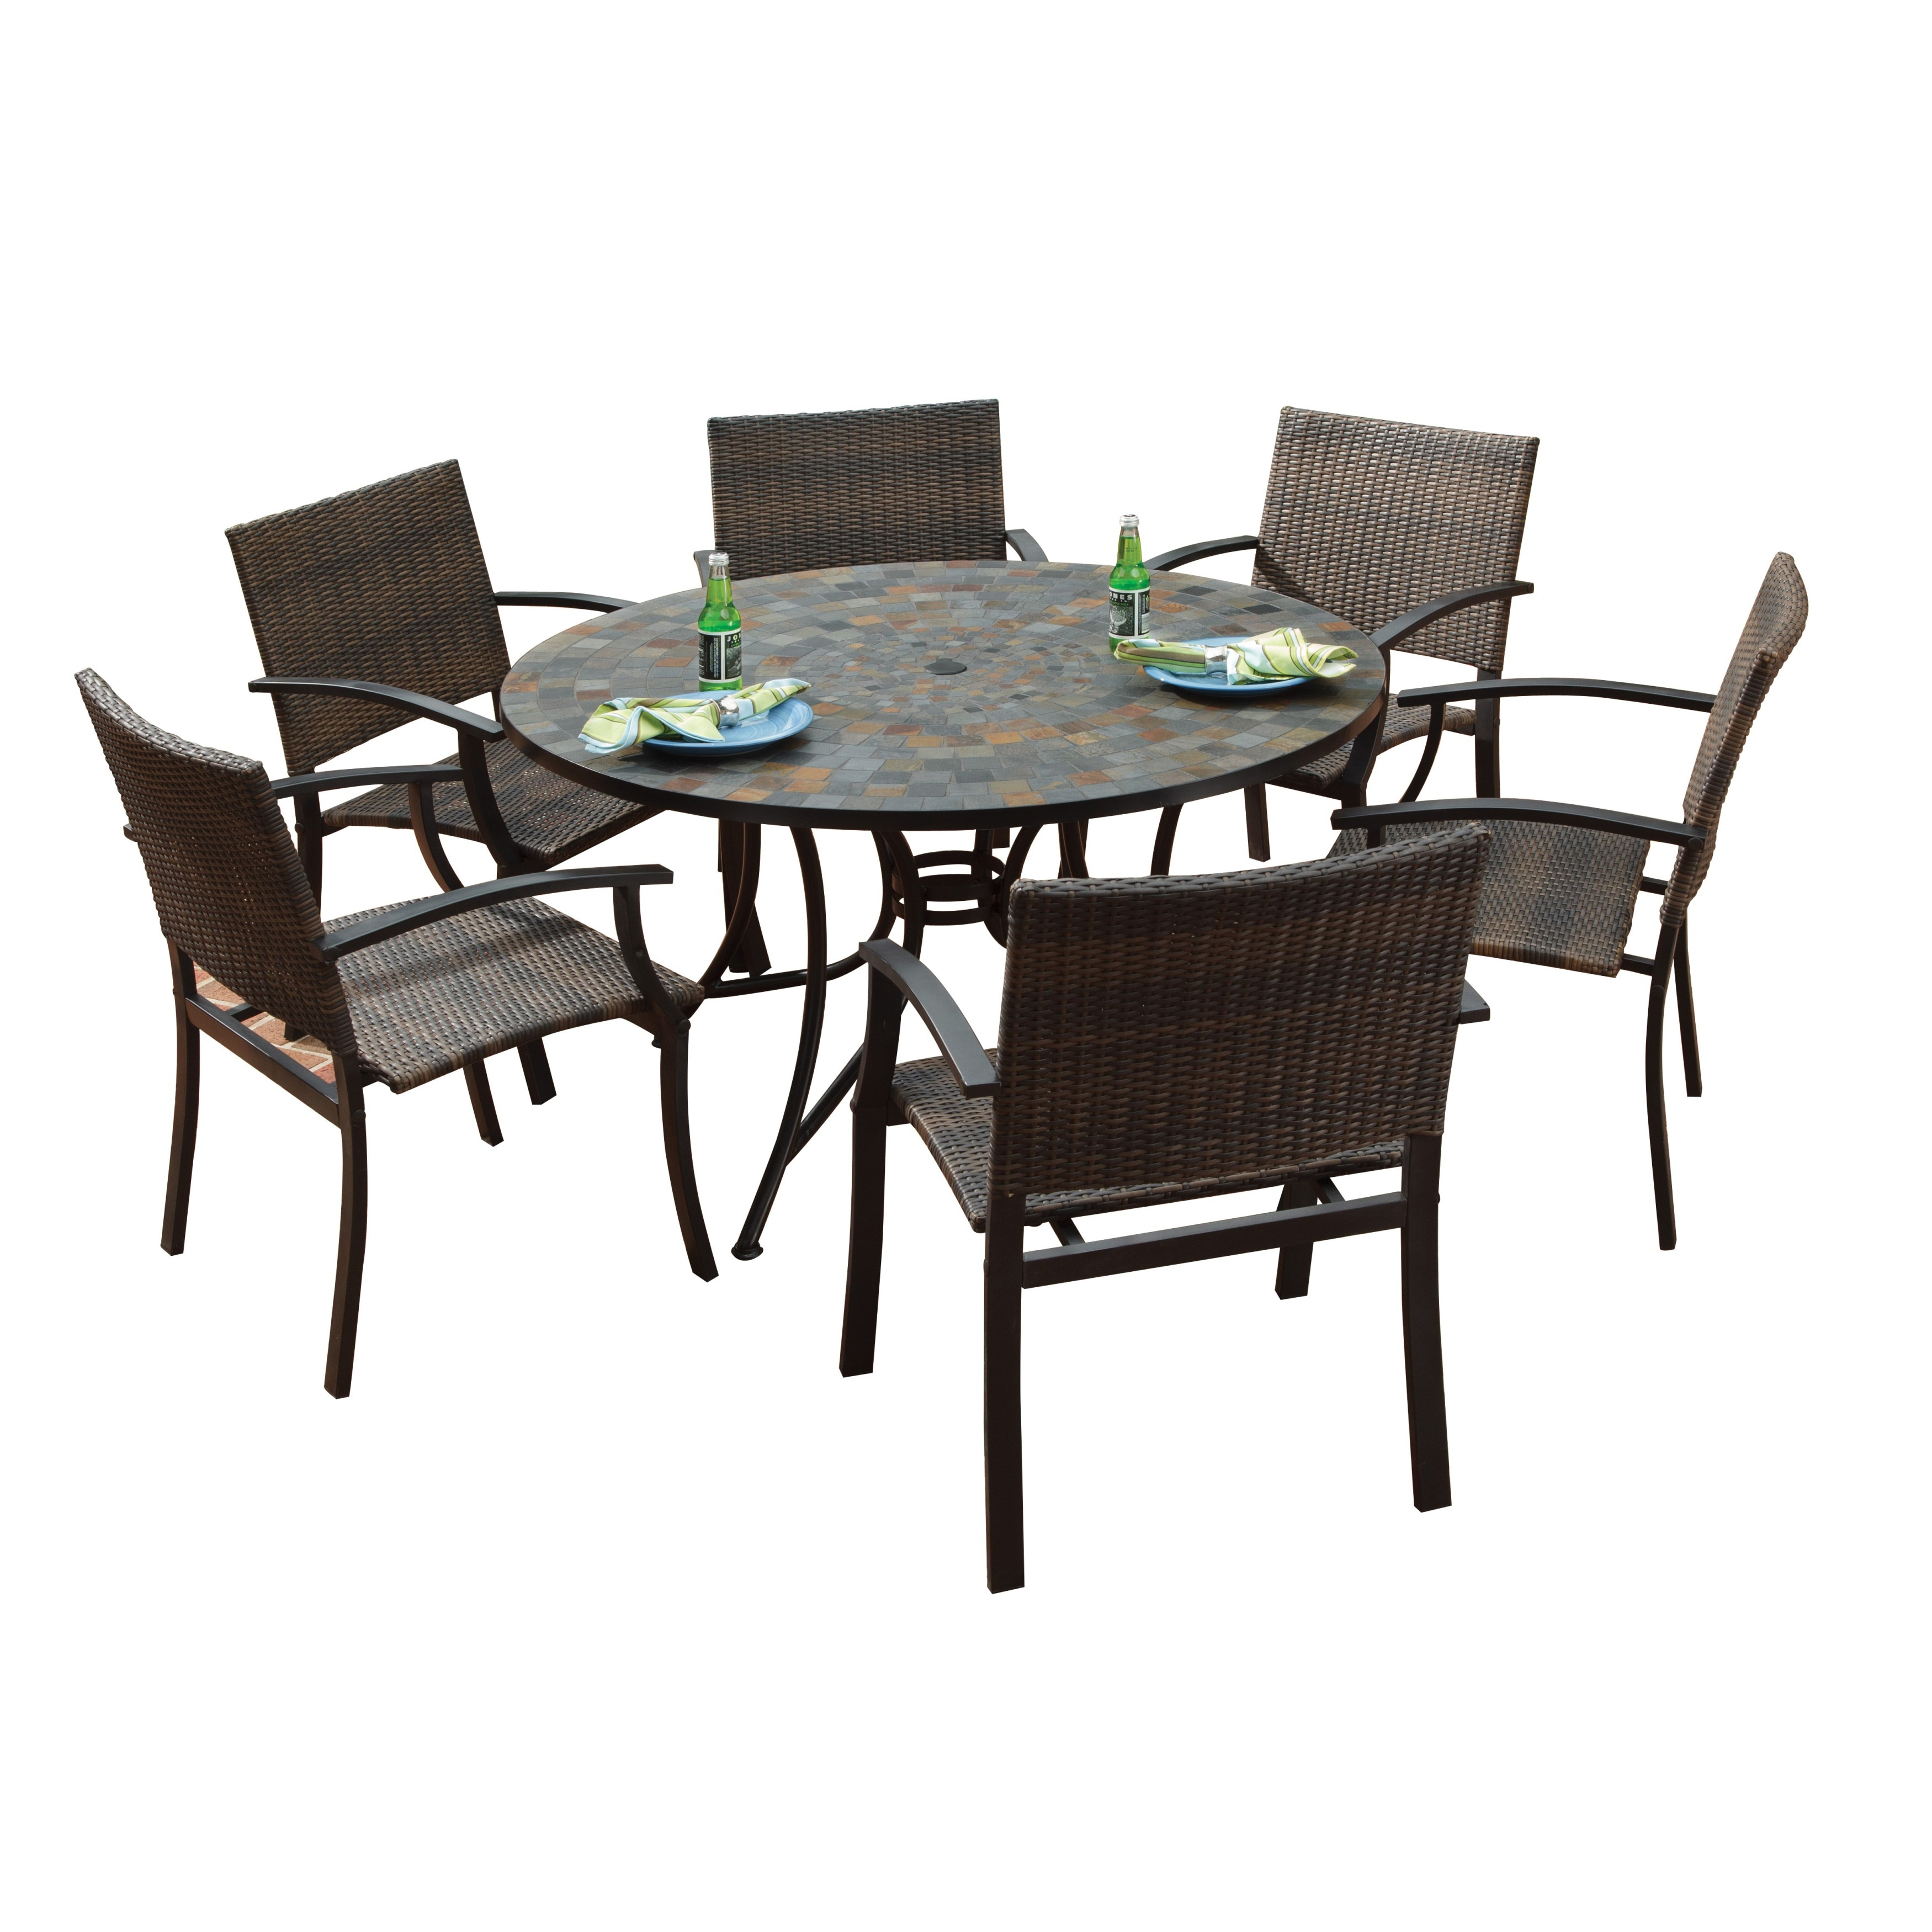 Large Round Dining Table: Stone Harbor Large Round Dining Table And Newport Arm